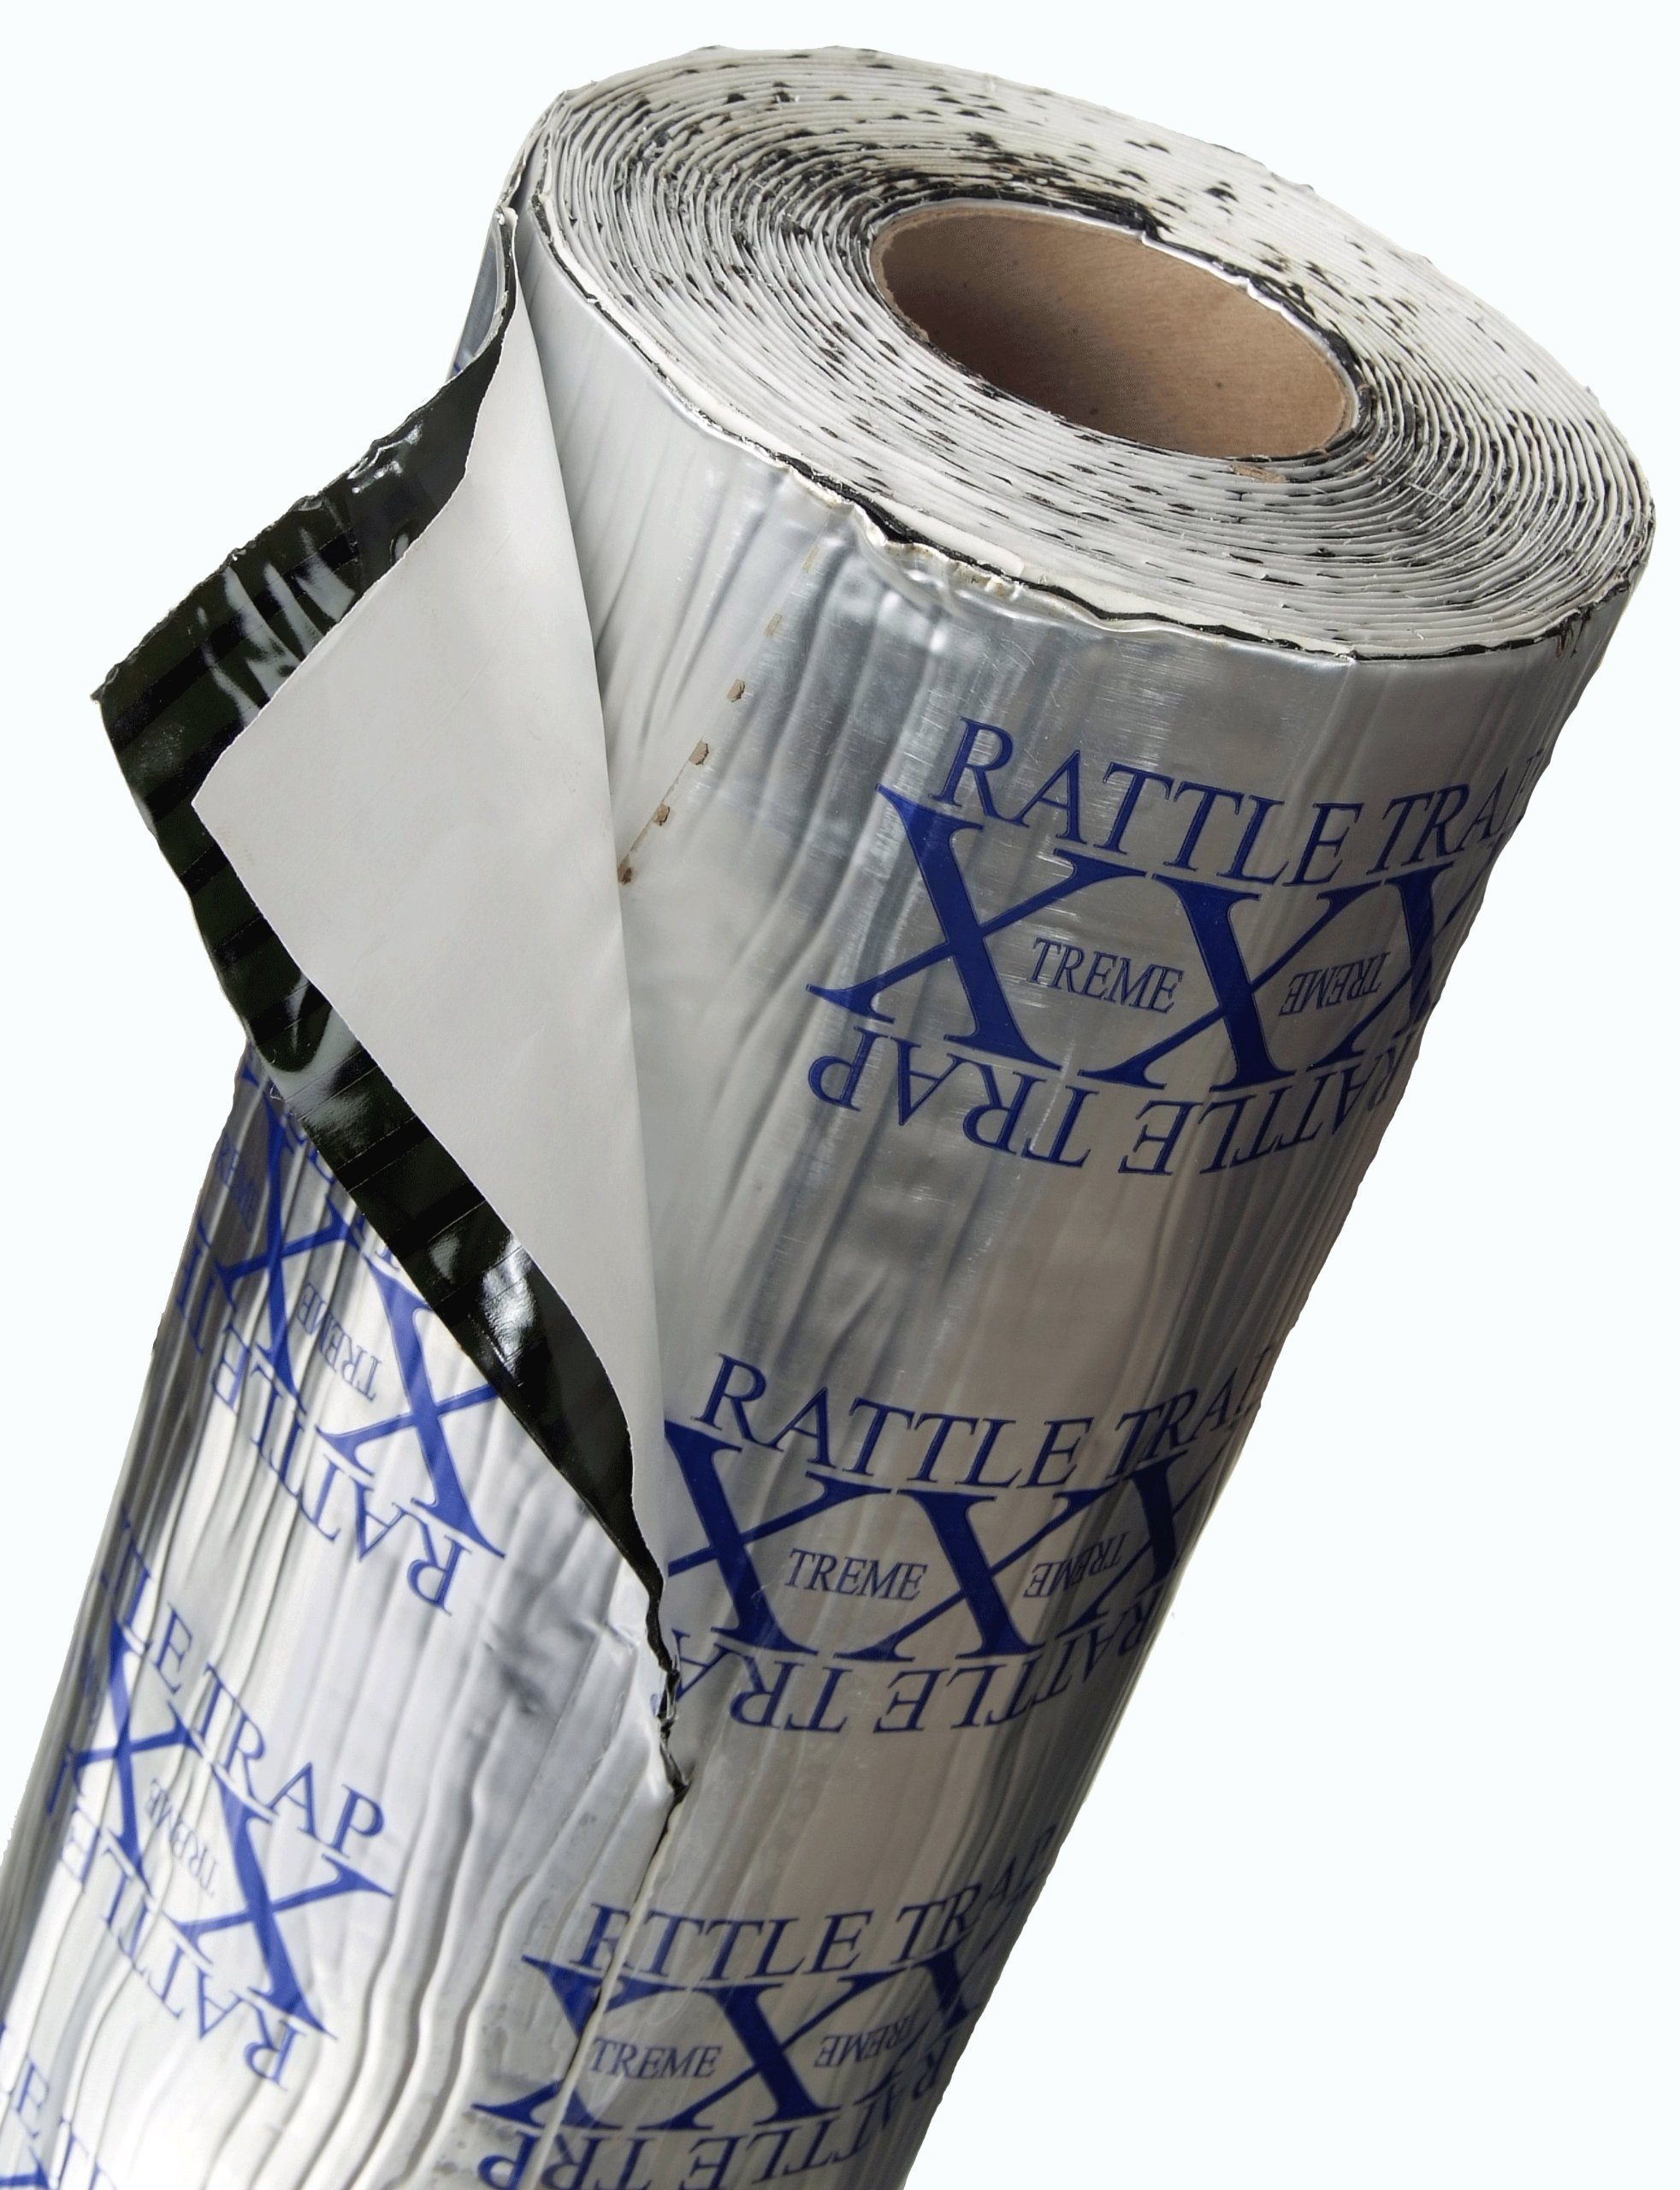 FatMat Self-Adhesive RattleTrap Sound Deadener Pack with Install Kit - 175 Sq Ft x 80 mil Thick by Fatmat